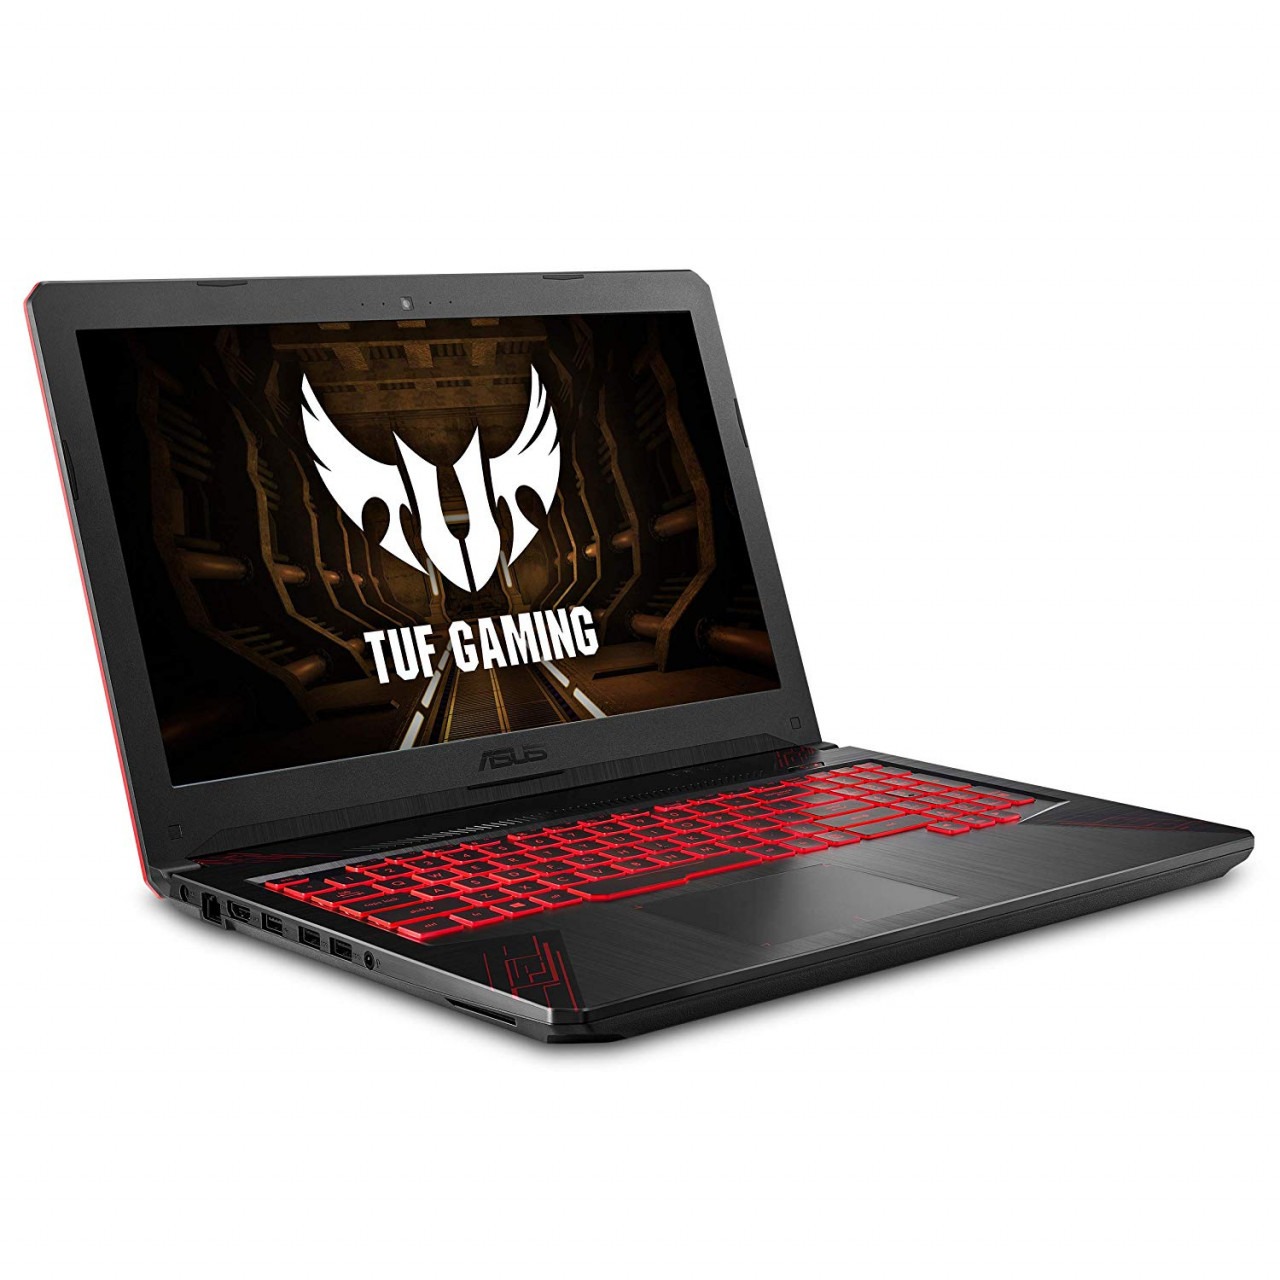 TUF GAMING - 5 Best Laptops for AutoCAD Users in 2020